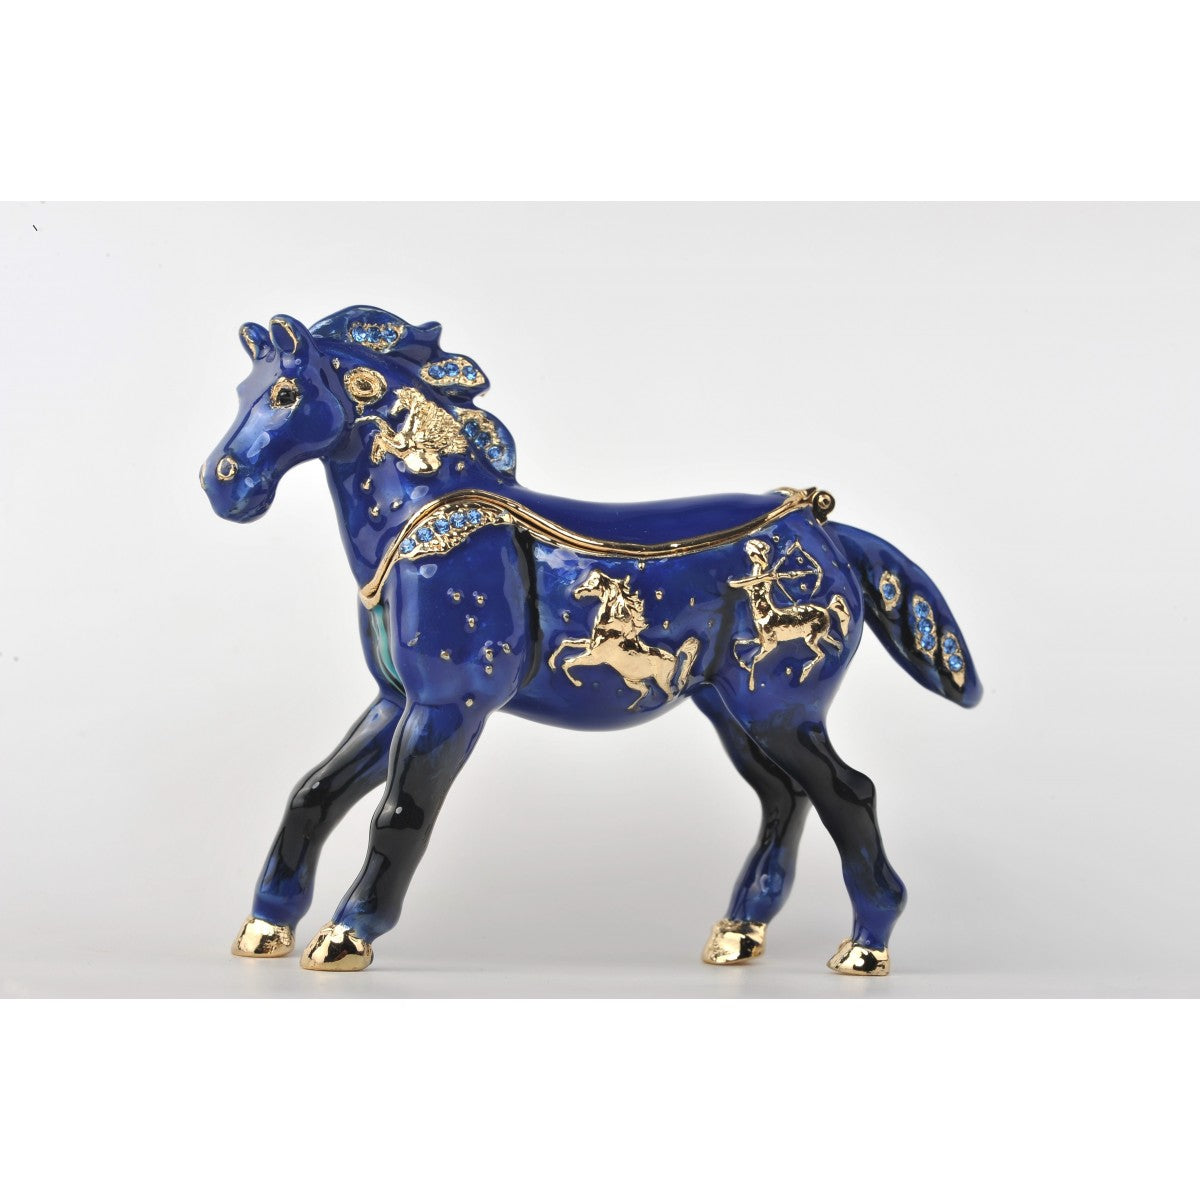 Blue Horse trinket box by Keren Kopal